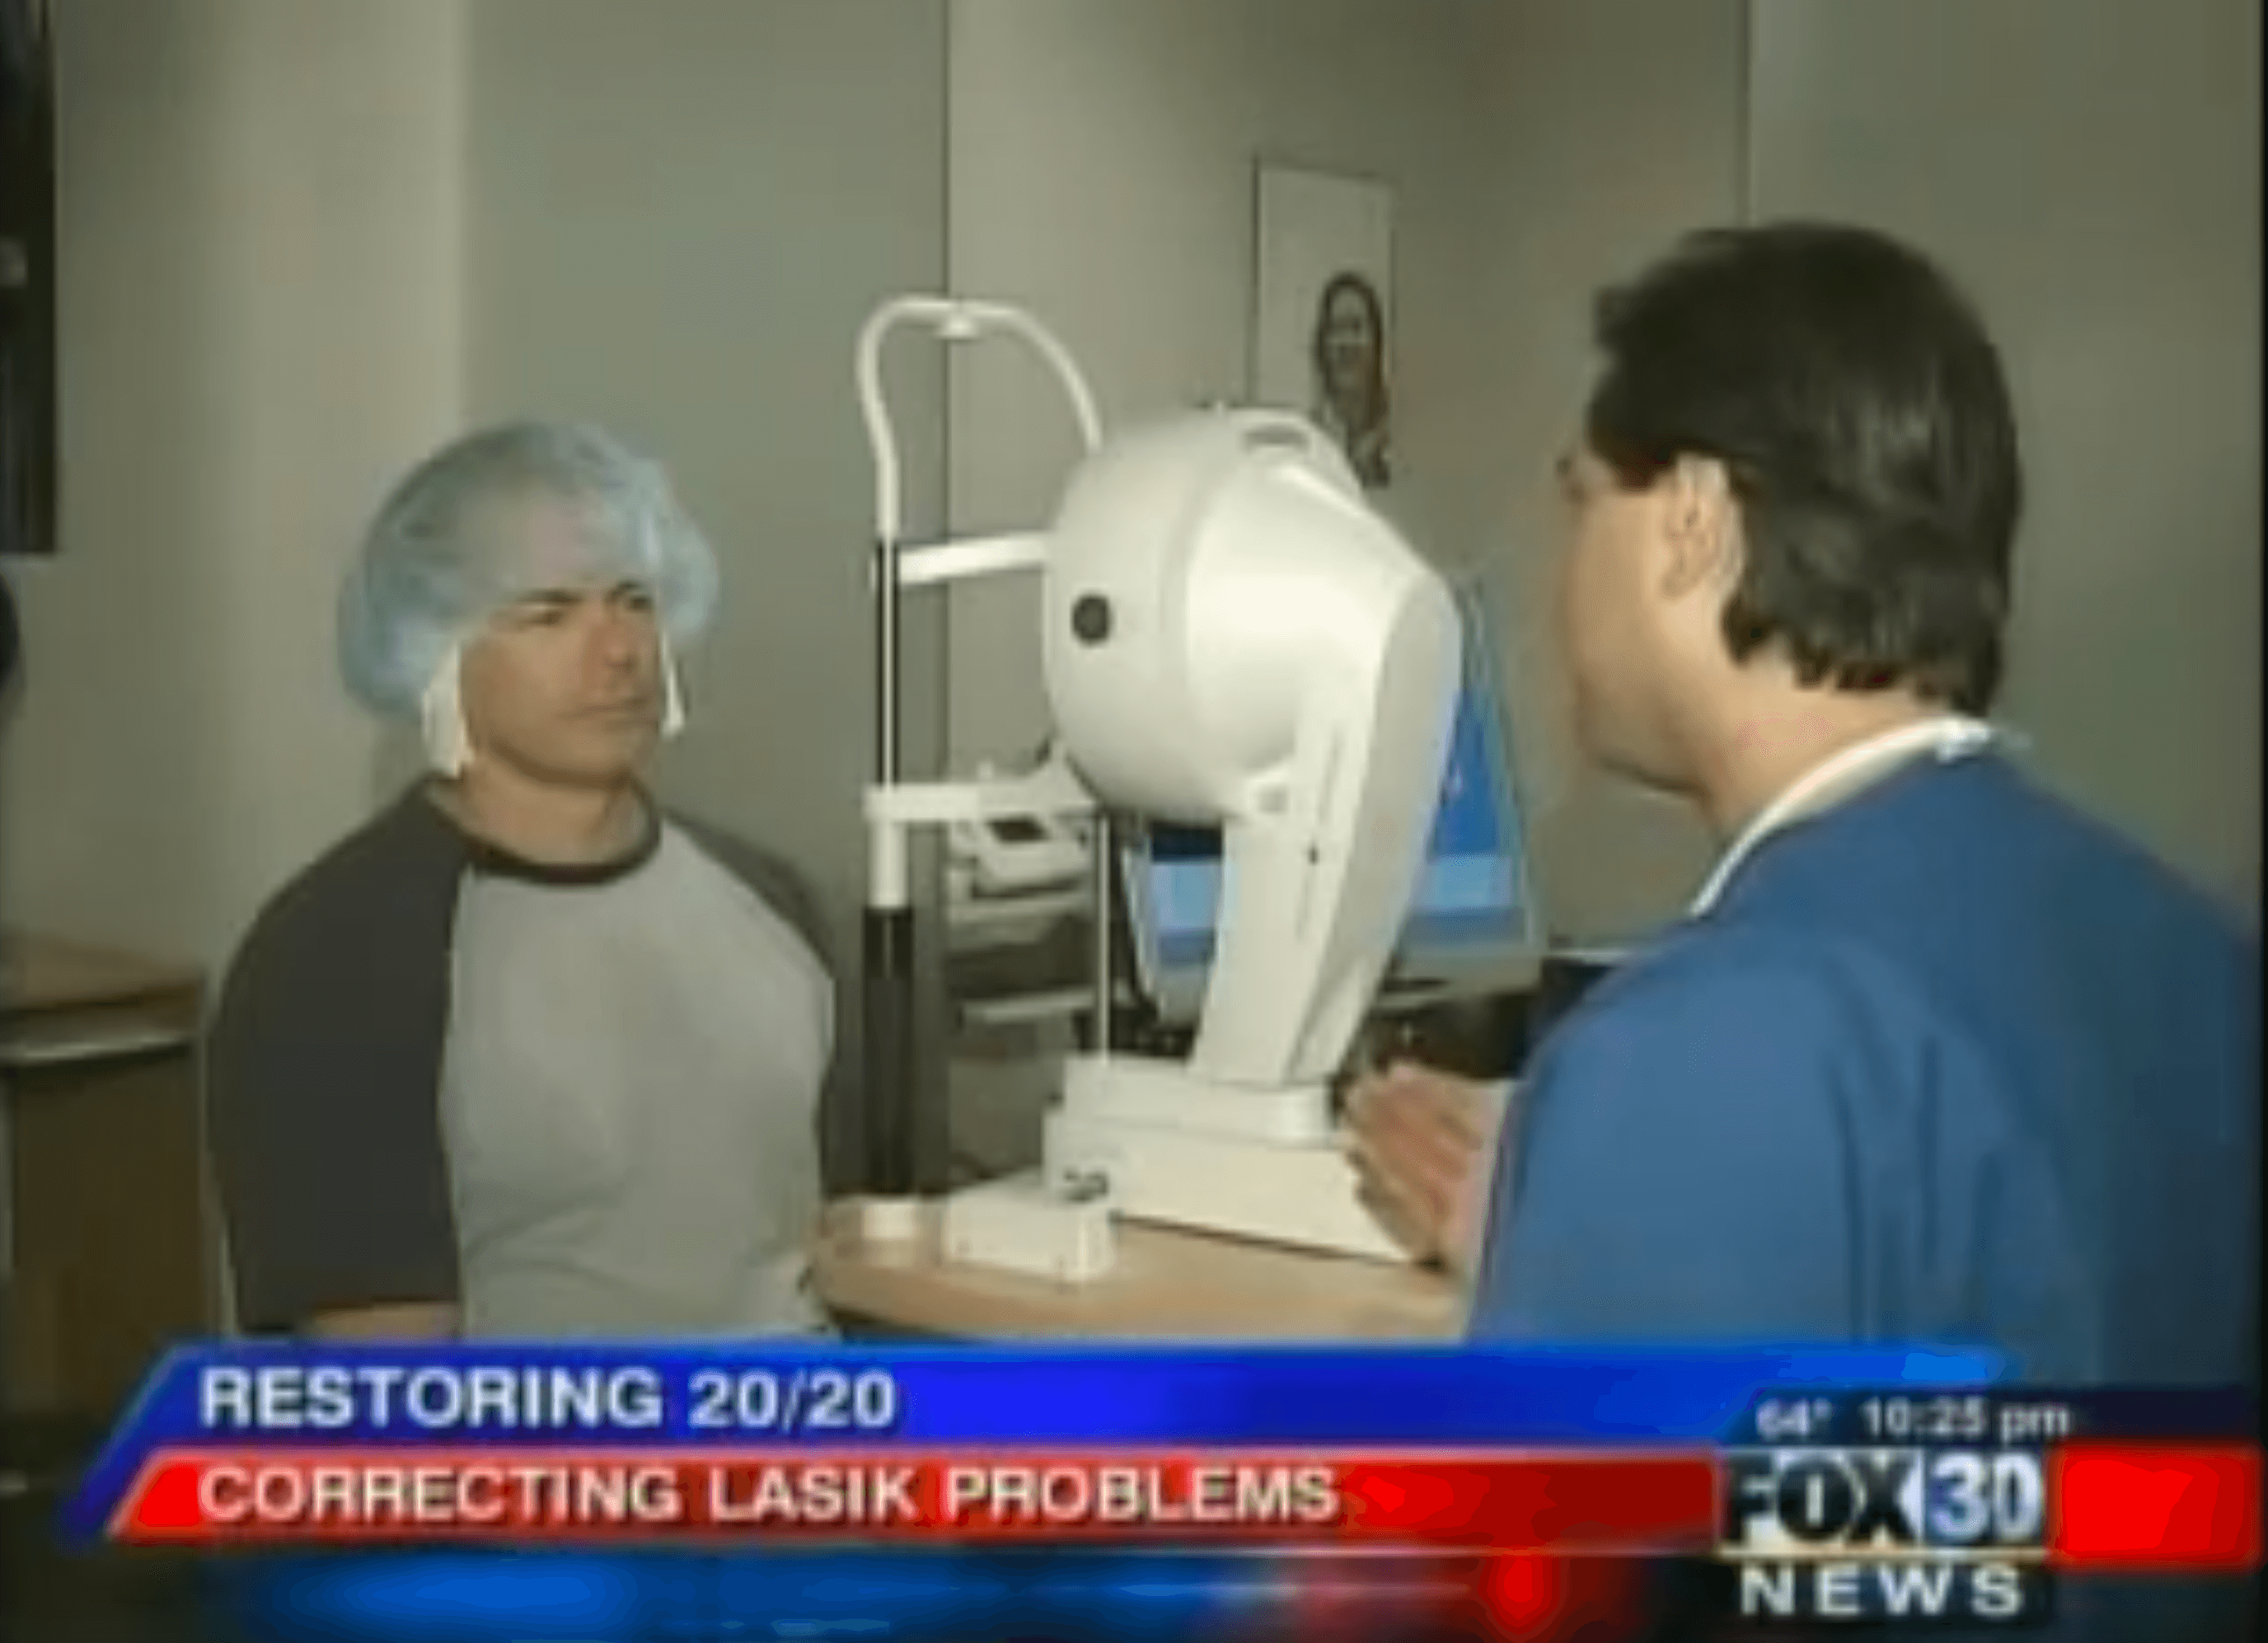 LASIK Complication Correction - Restoring 20/20